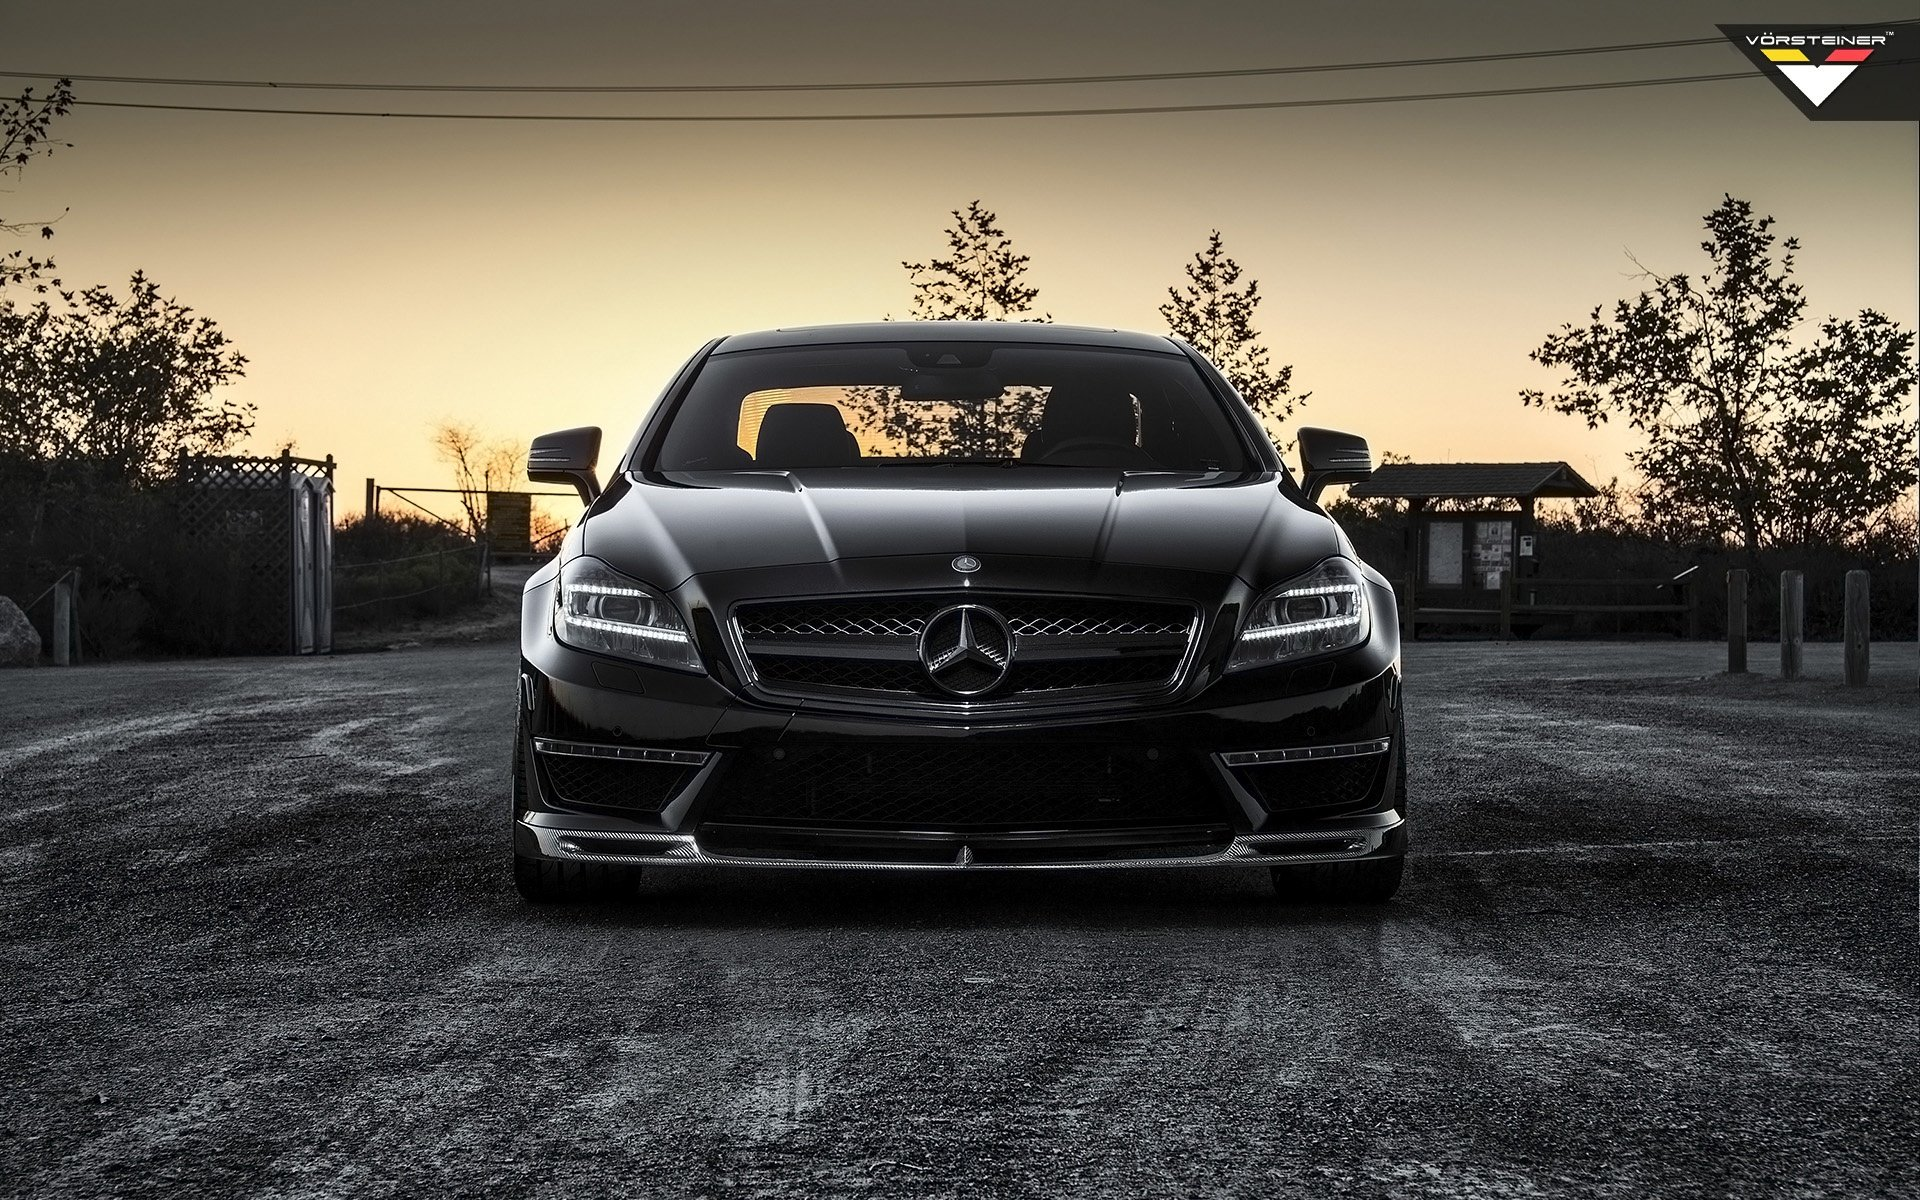 Mercedes Wallpaper Hd Wallpapersafari